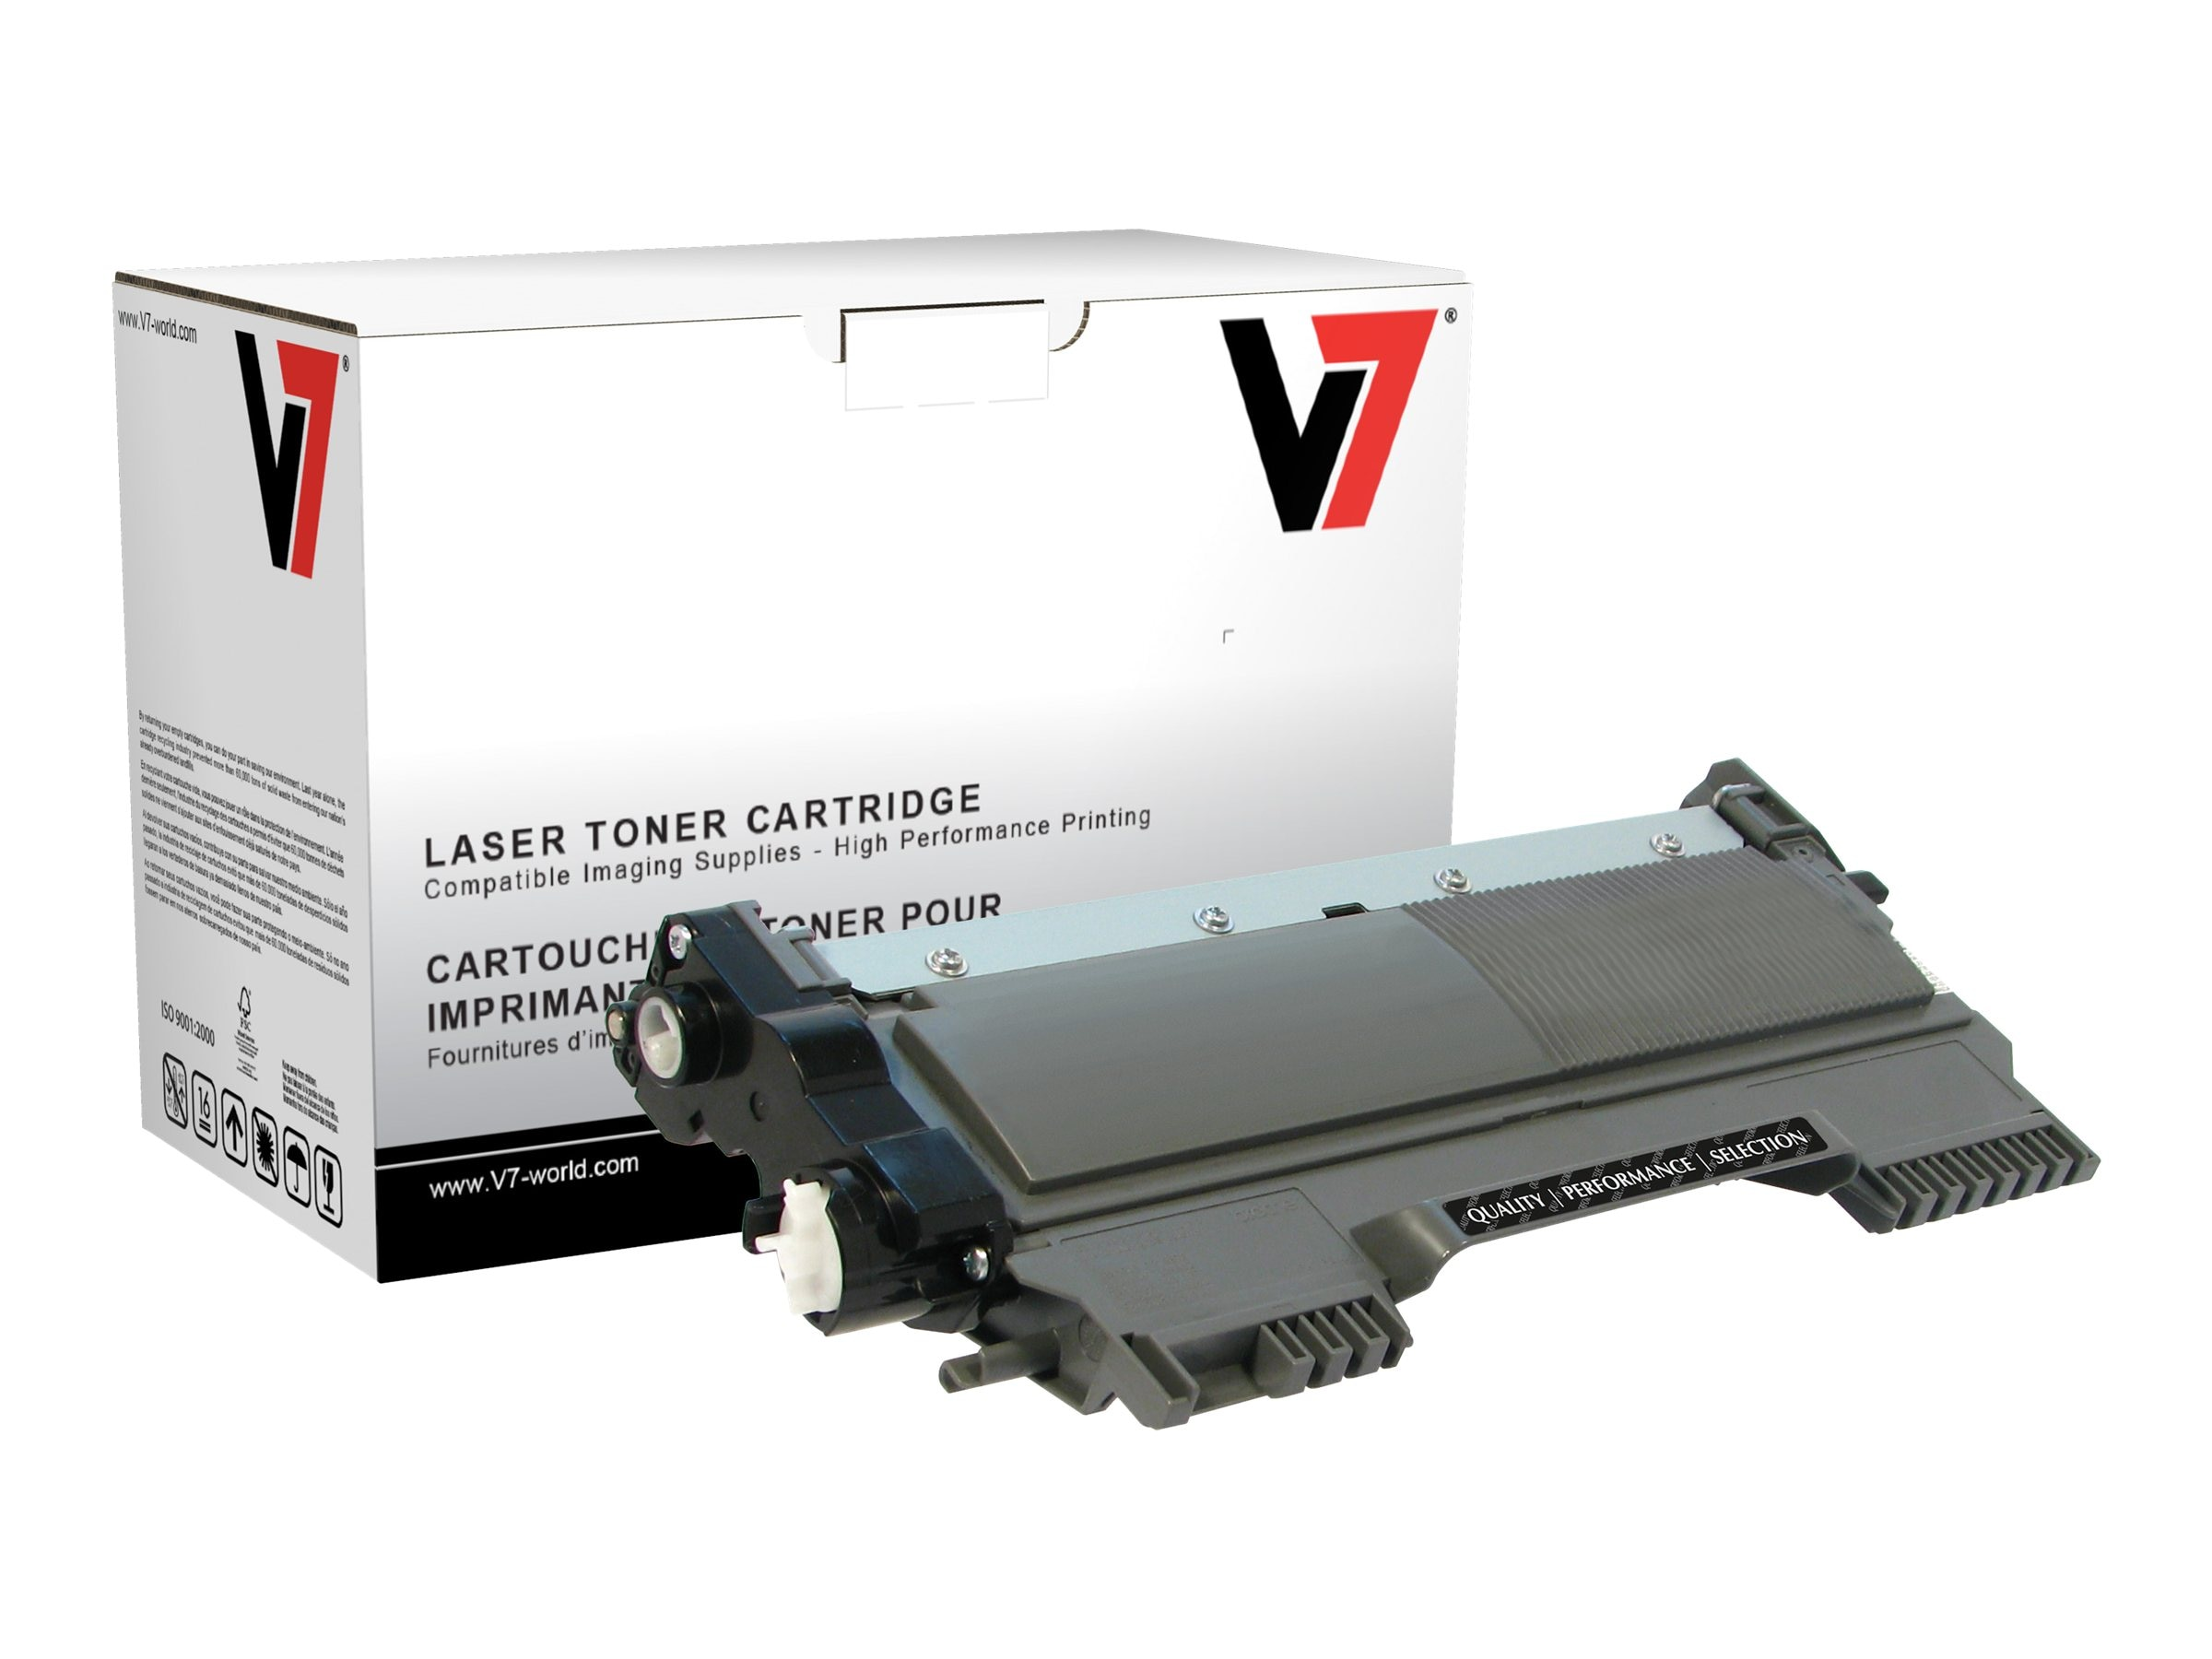 V7 TN420 Black Toner Cartridge for Br0ther HL-2240D (TAA Compliant), TBK2TN420, 13731662, Toner and Imaging Components